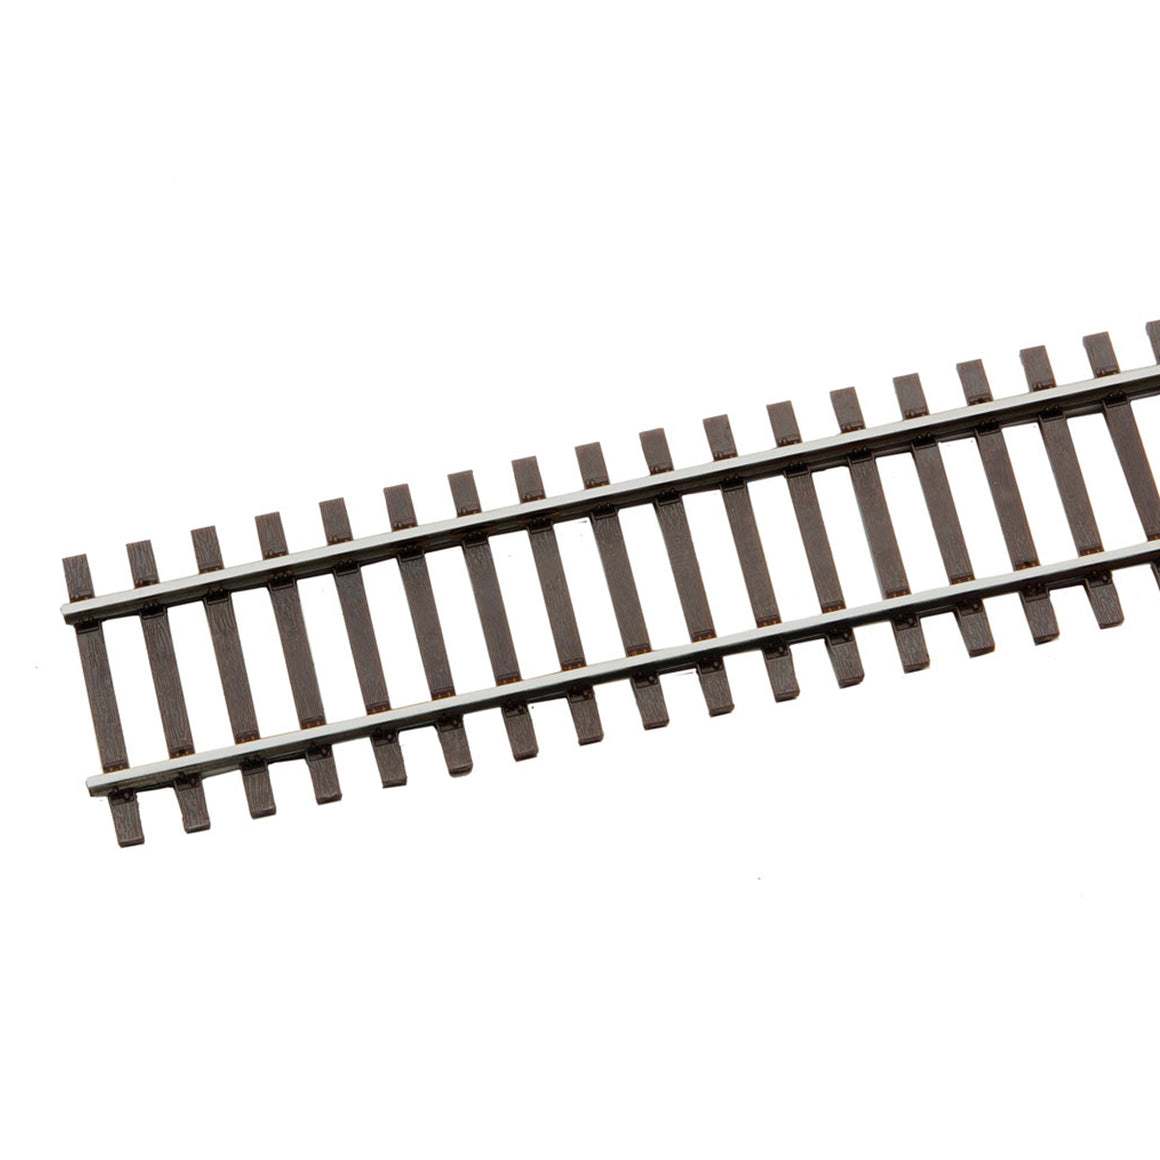 HO Scale: Code 83 Flex Track with Wood Ties - 5 Pack